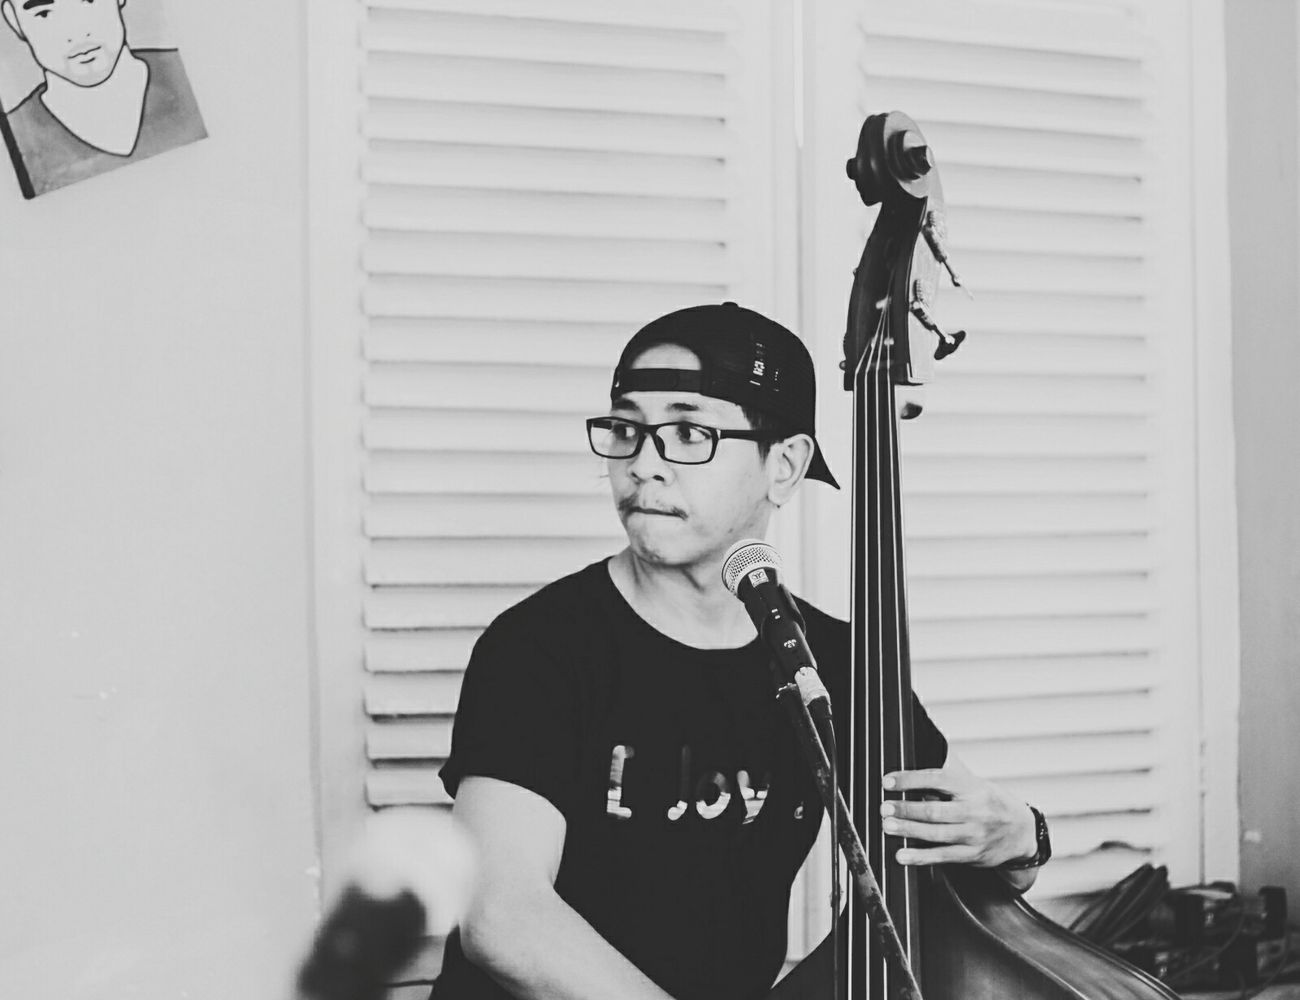 Taking Photos That's Me Musicphotography Blackandwhite Photography LiveMusic Monochrome Endorsement Joylabsclothing Self Portrait The Portraitist - 2017 EyeEm Awards